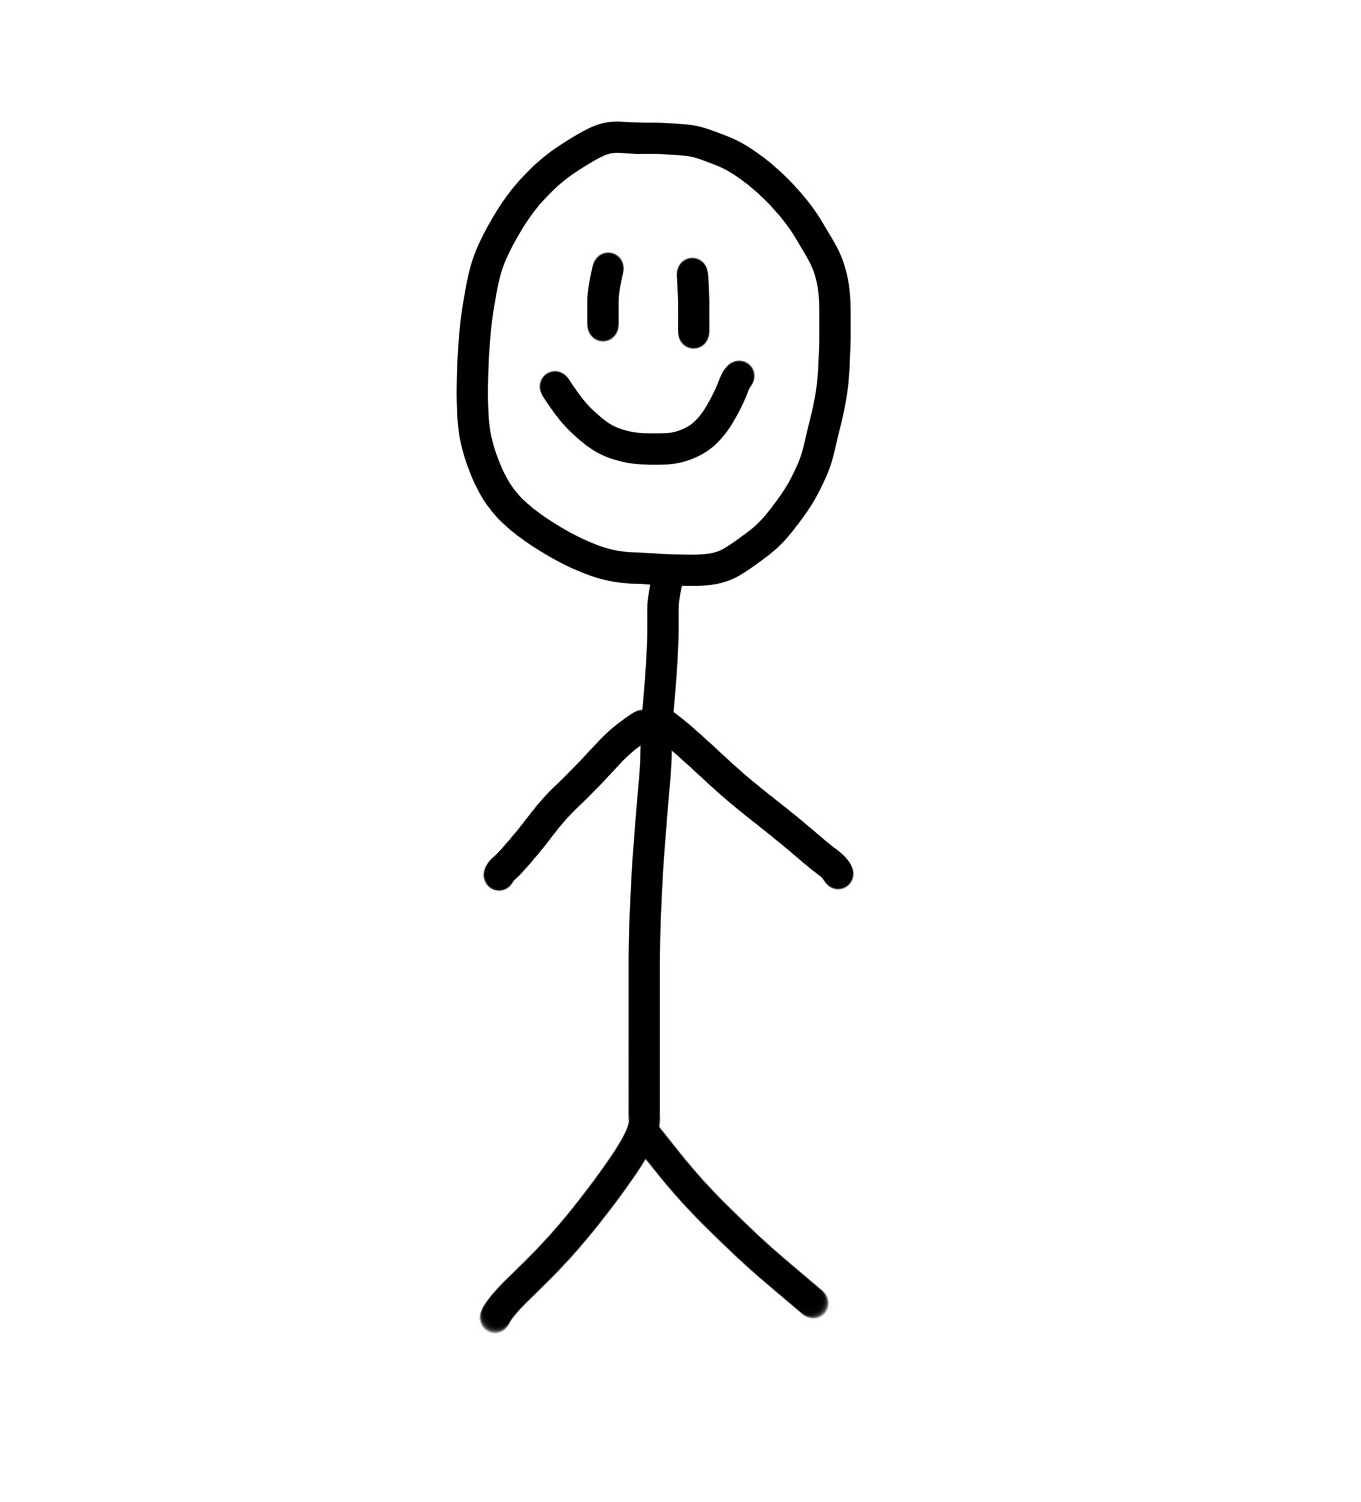 Sad Stick Figure.